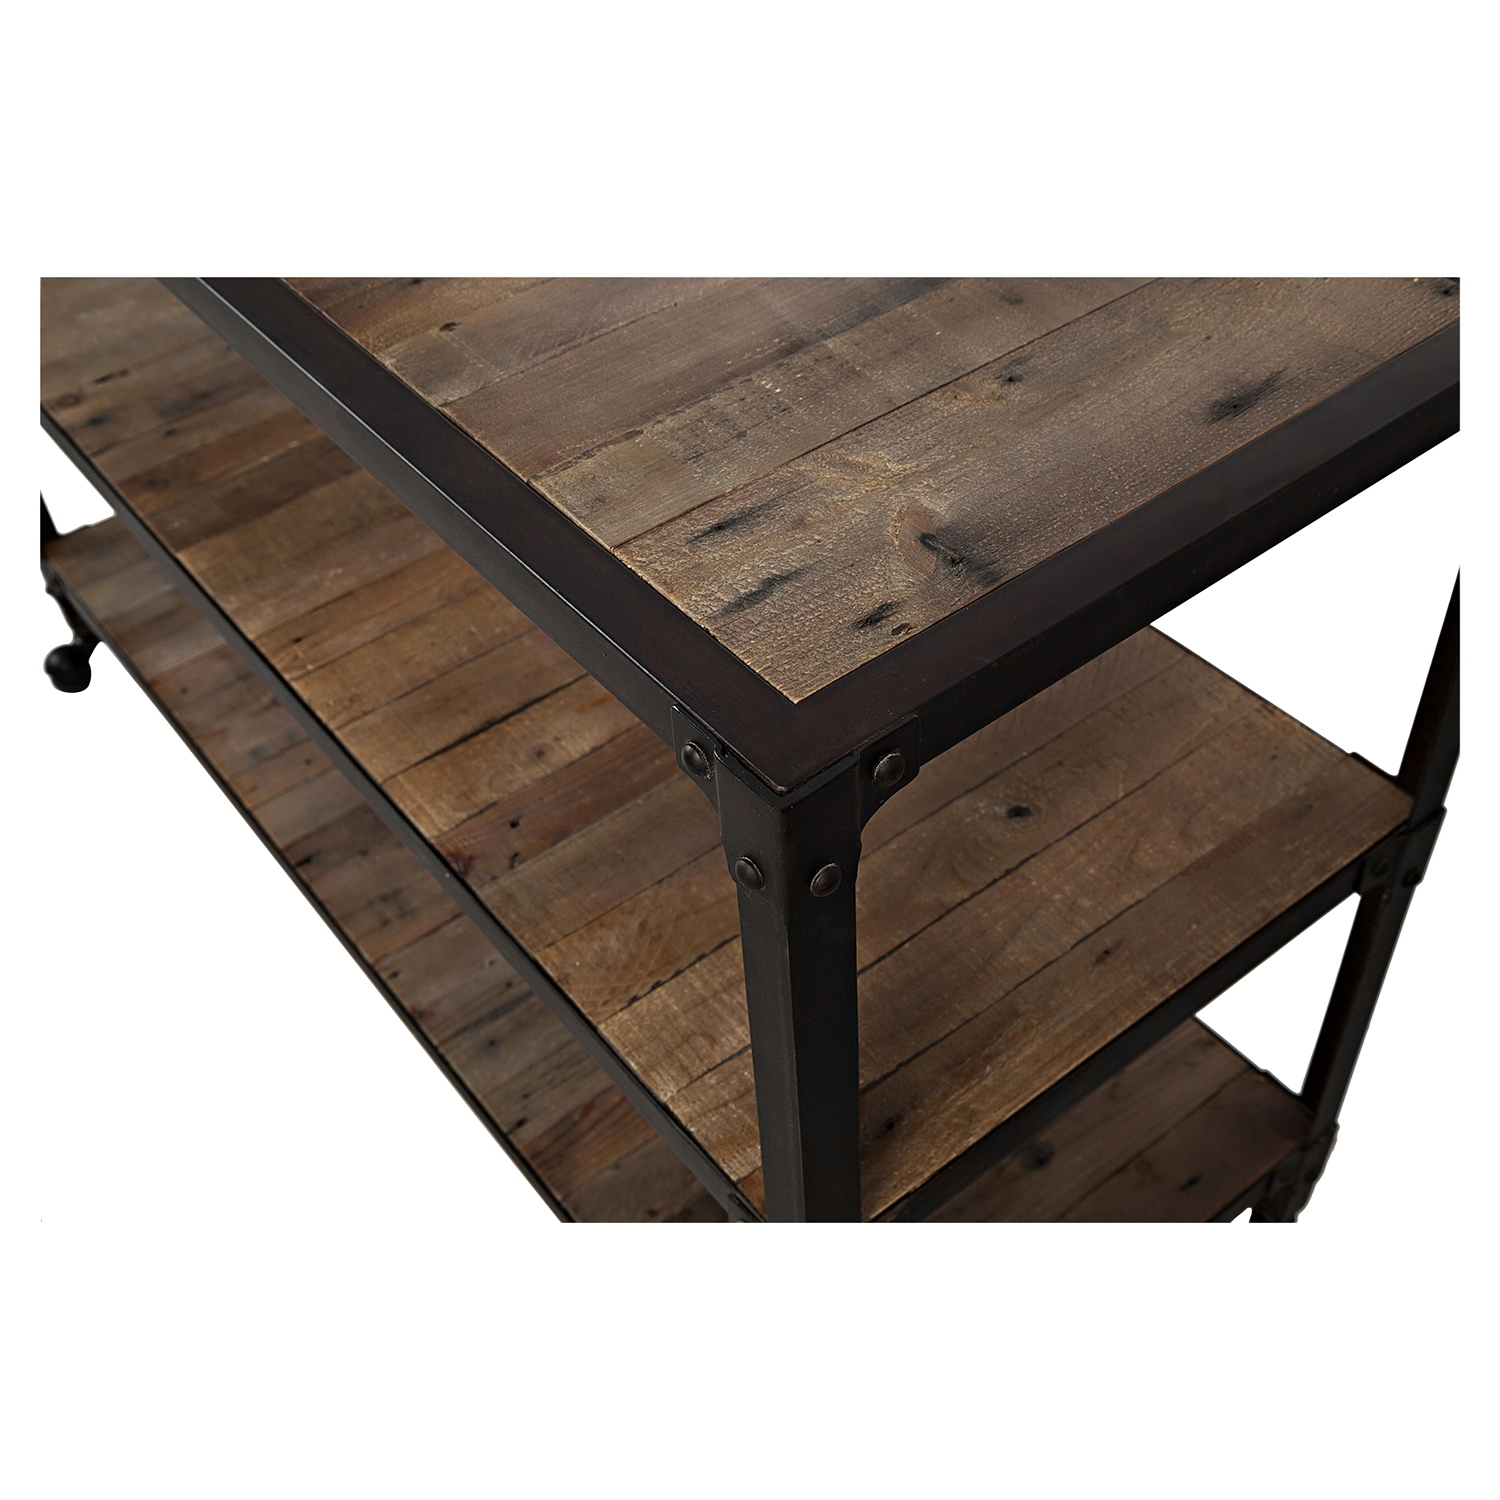 Franklin Forge Sofa Table - JOFR-1540-4